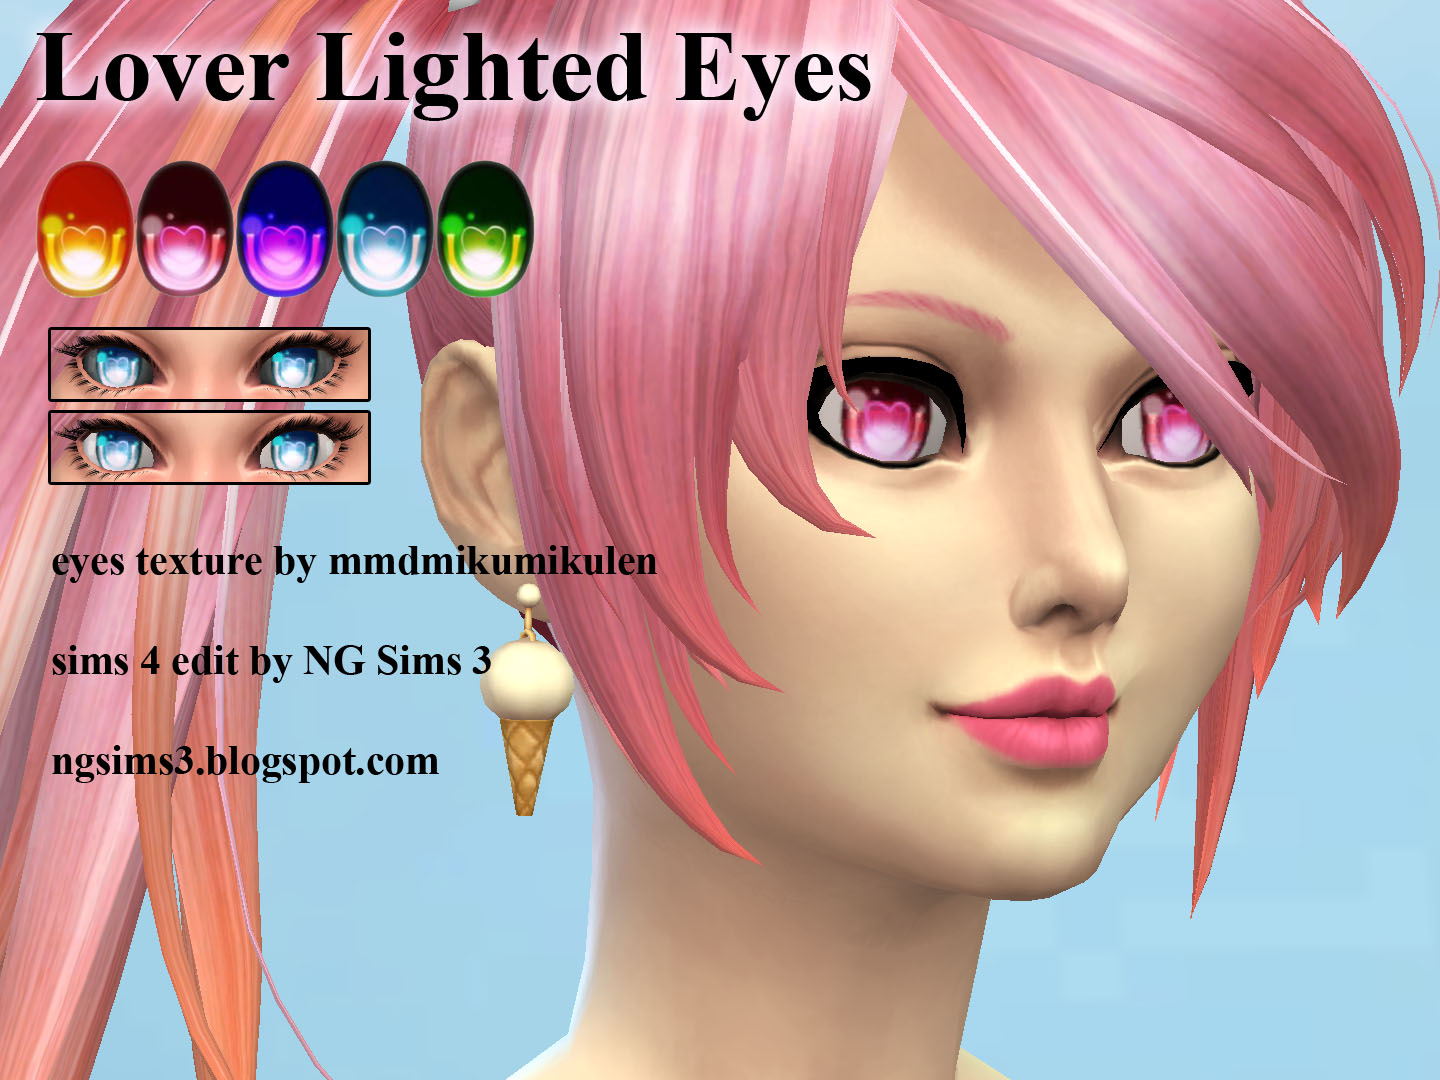 Anime Eyes Colors The Sims 4 _ P1 - SIMS4 Clove share Asia